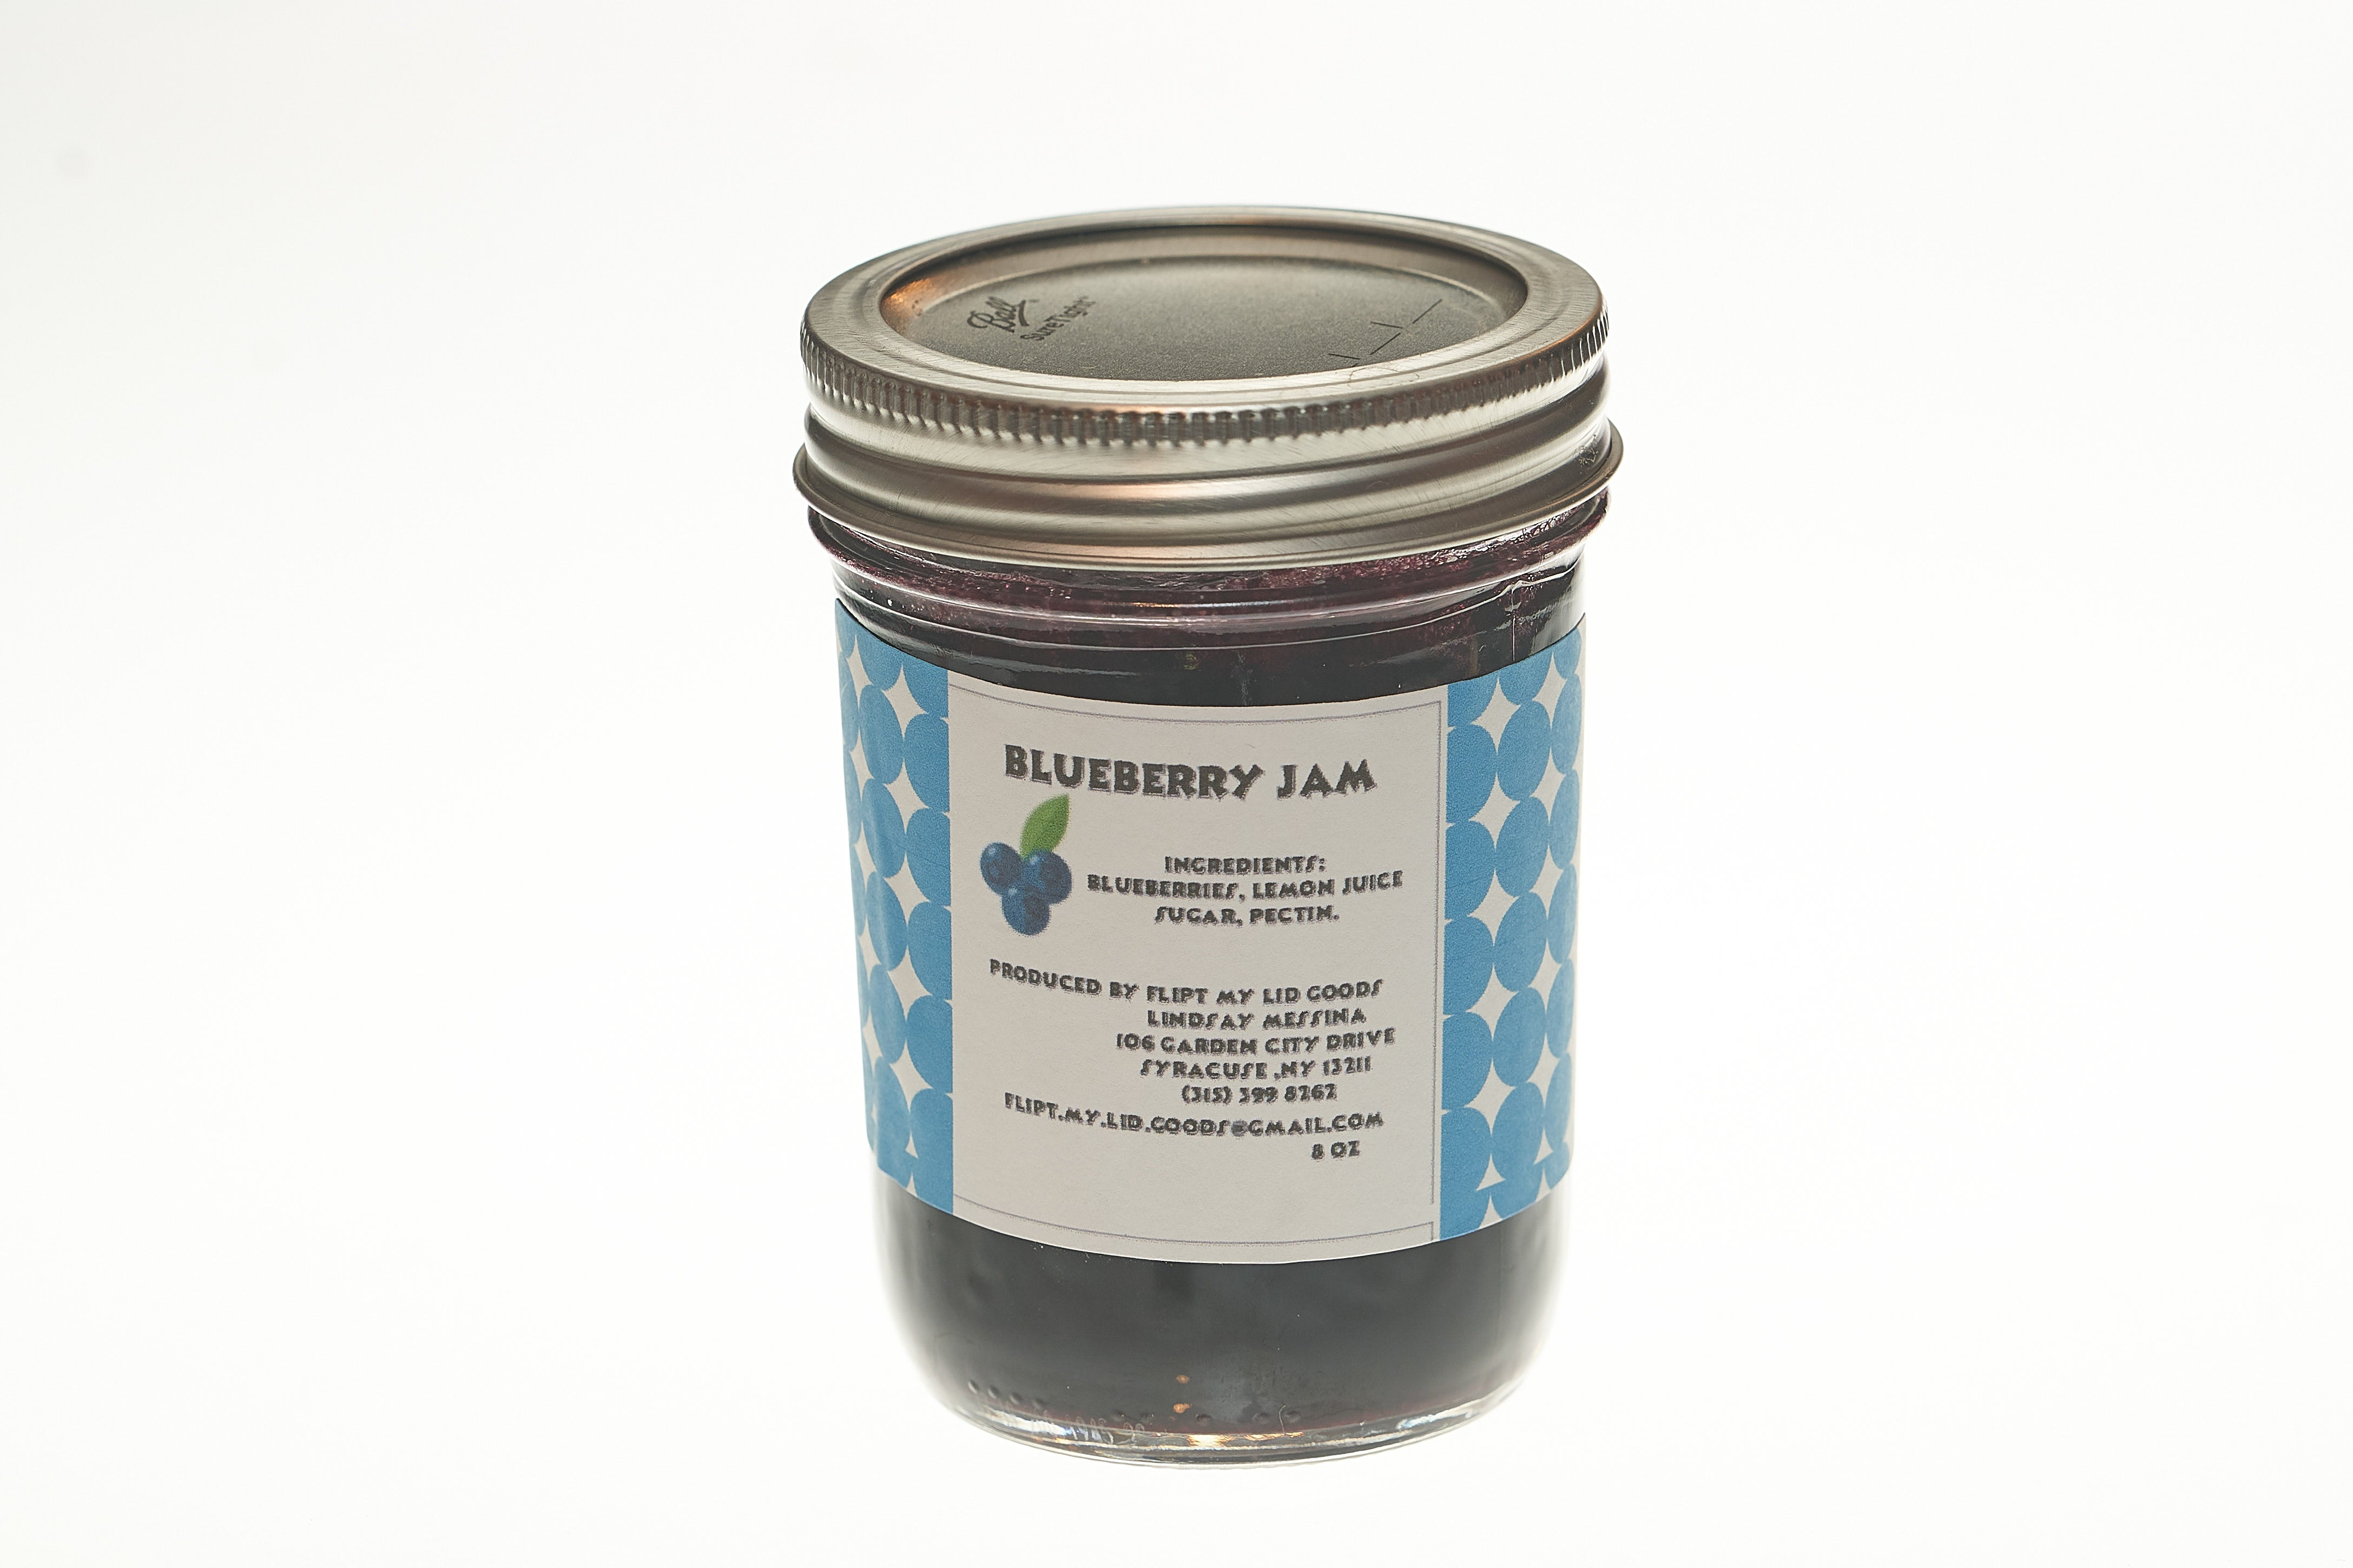 Sugar-free Blueberry Jam (8 oz)